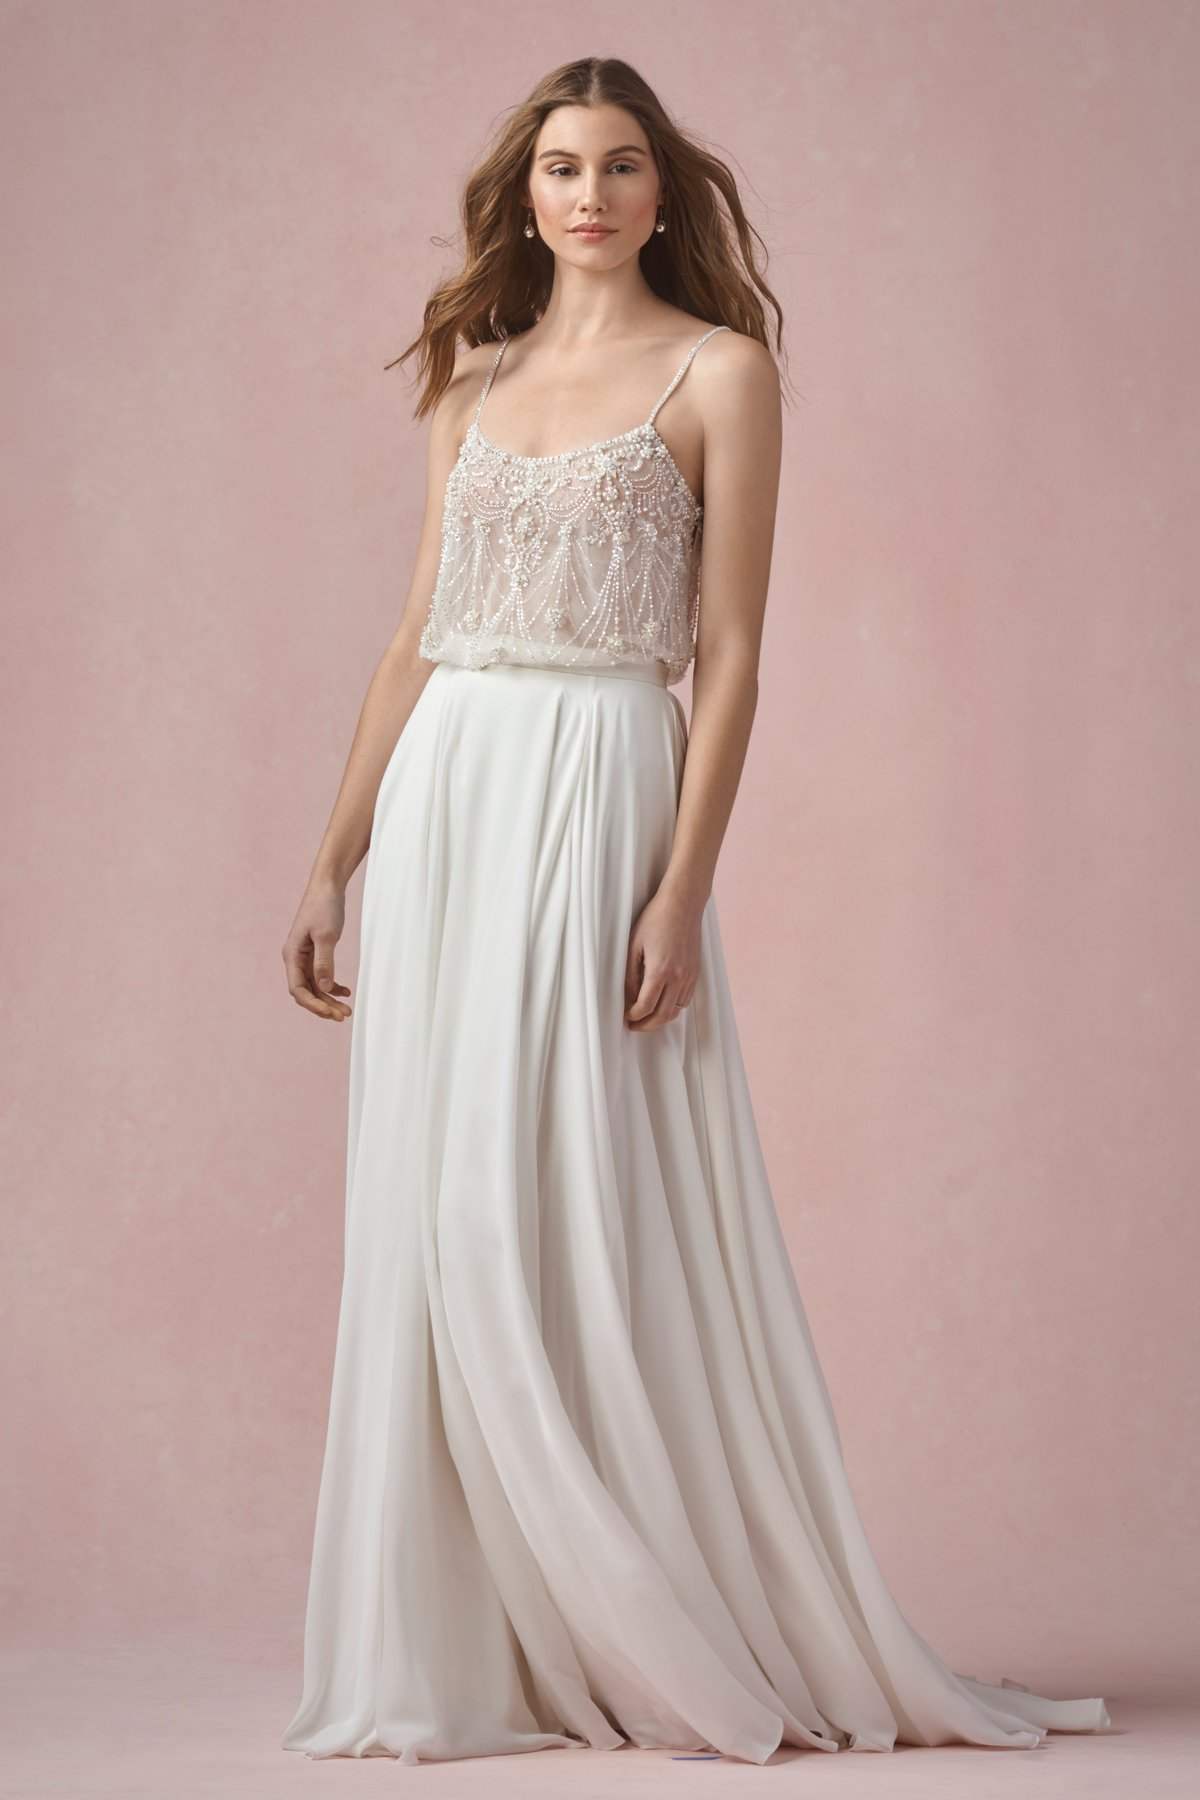 cfa06b7f4f72 Watters/Willowby | Frocks Modern Brides & Bridesmaids